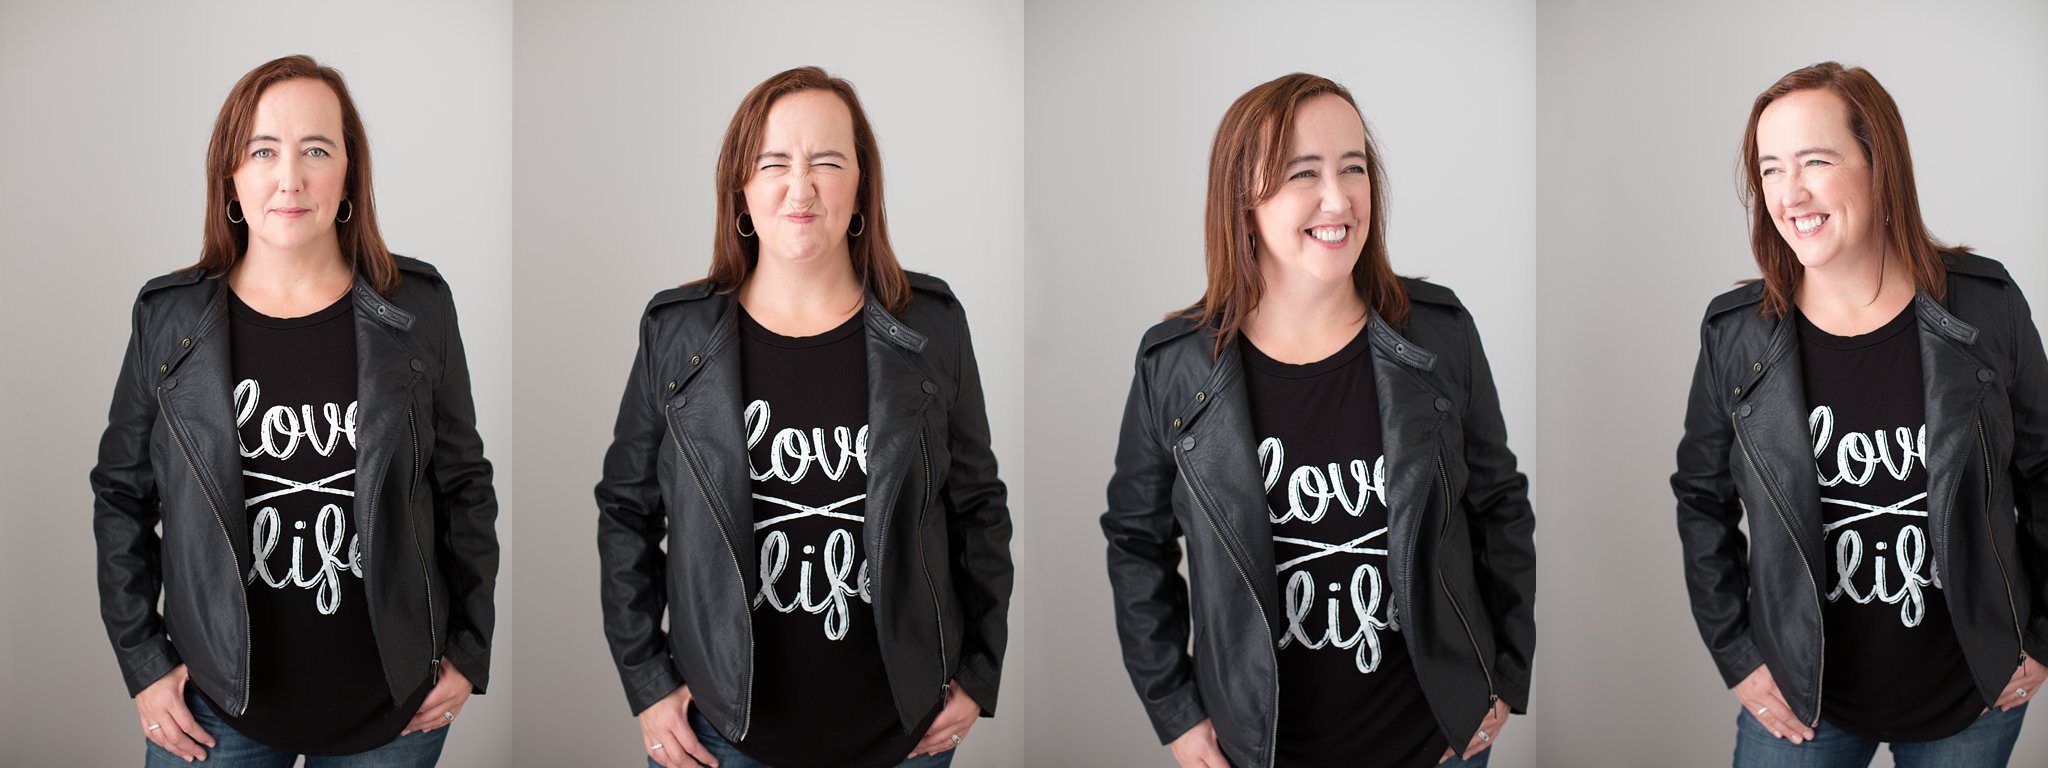 Portraits of Woman in Black Leather Jacket_0006.jpg